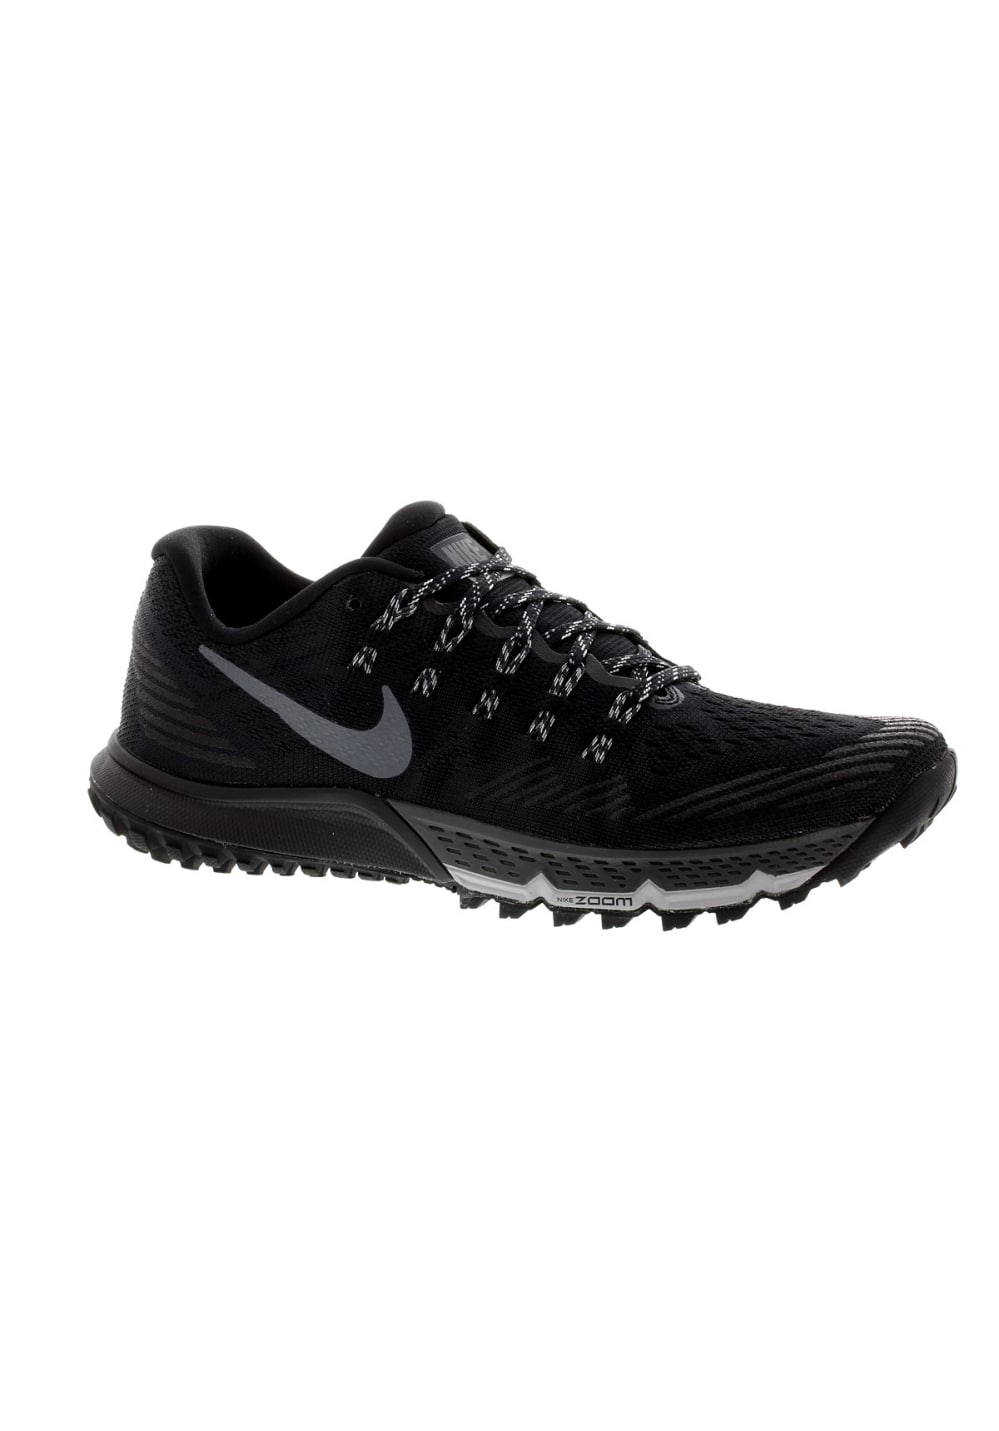 official photos f89d9 e8316 Next. -60%. Nike. Air Zoom Terra Kiger 3 - Chaussures running pour Femme